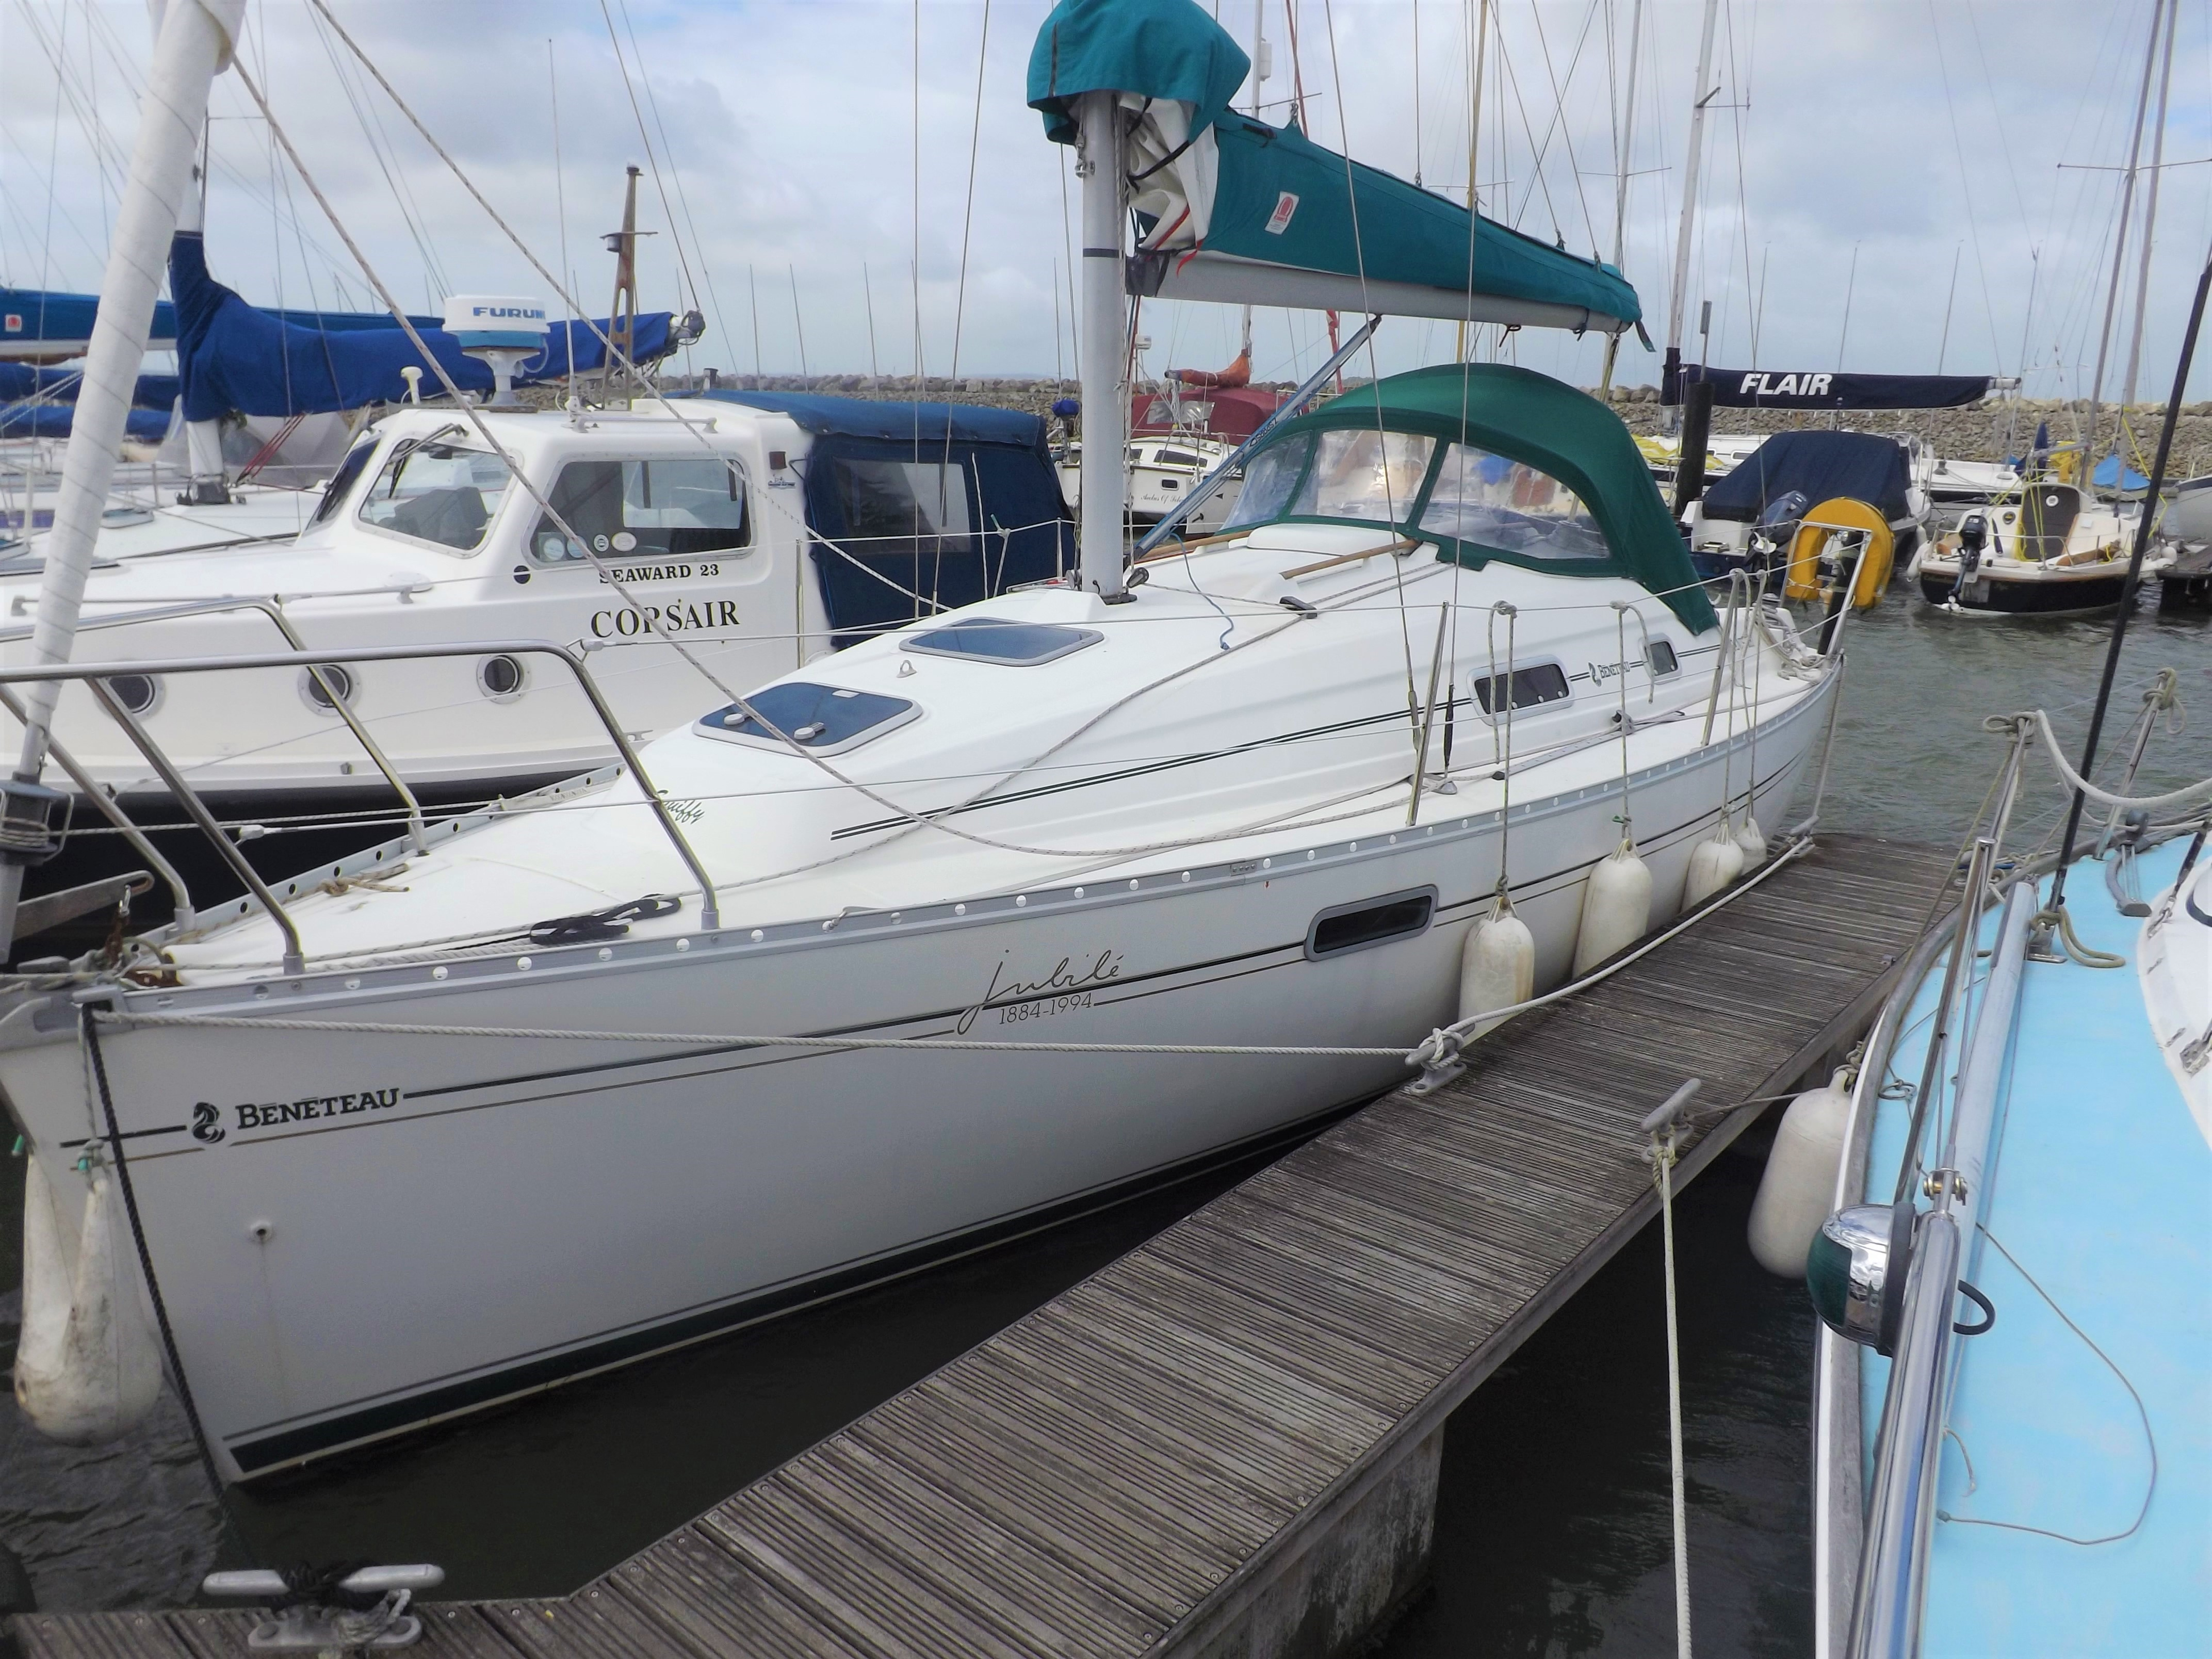 Beneteau Oceanis 281 Beneteau 281 - For Sale